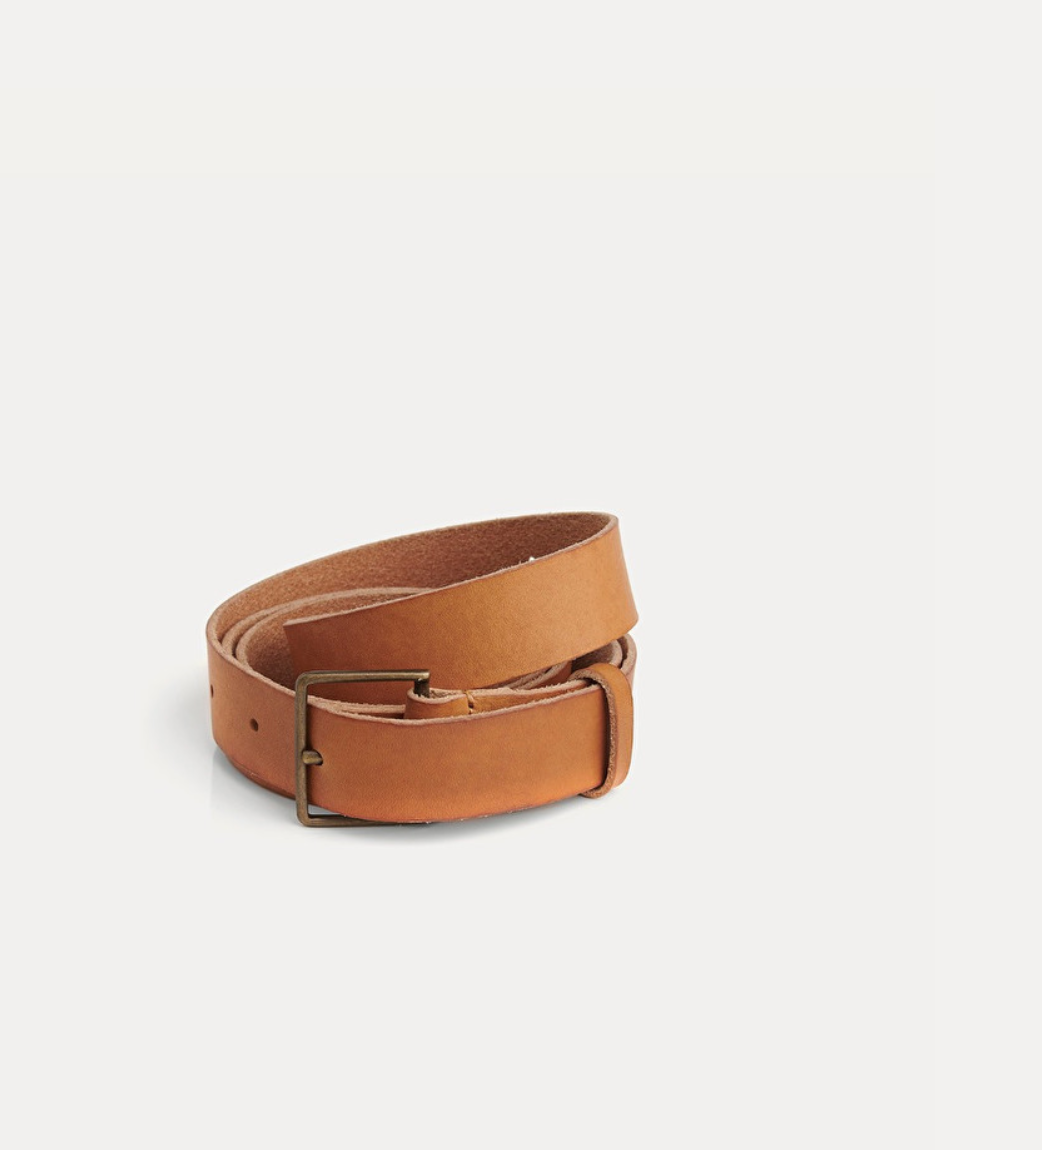 8129 my belt naturale